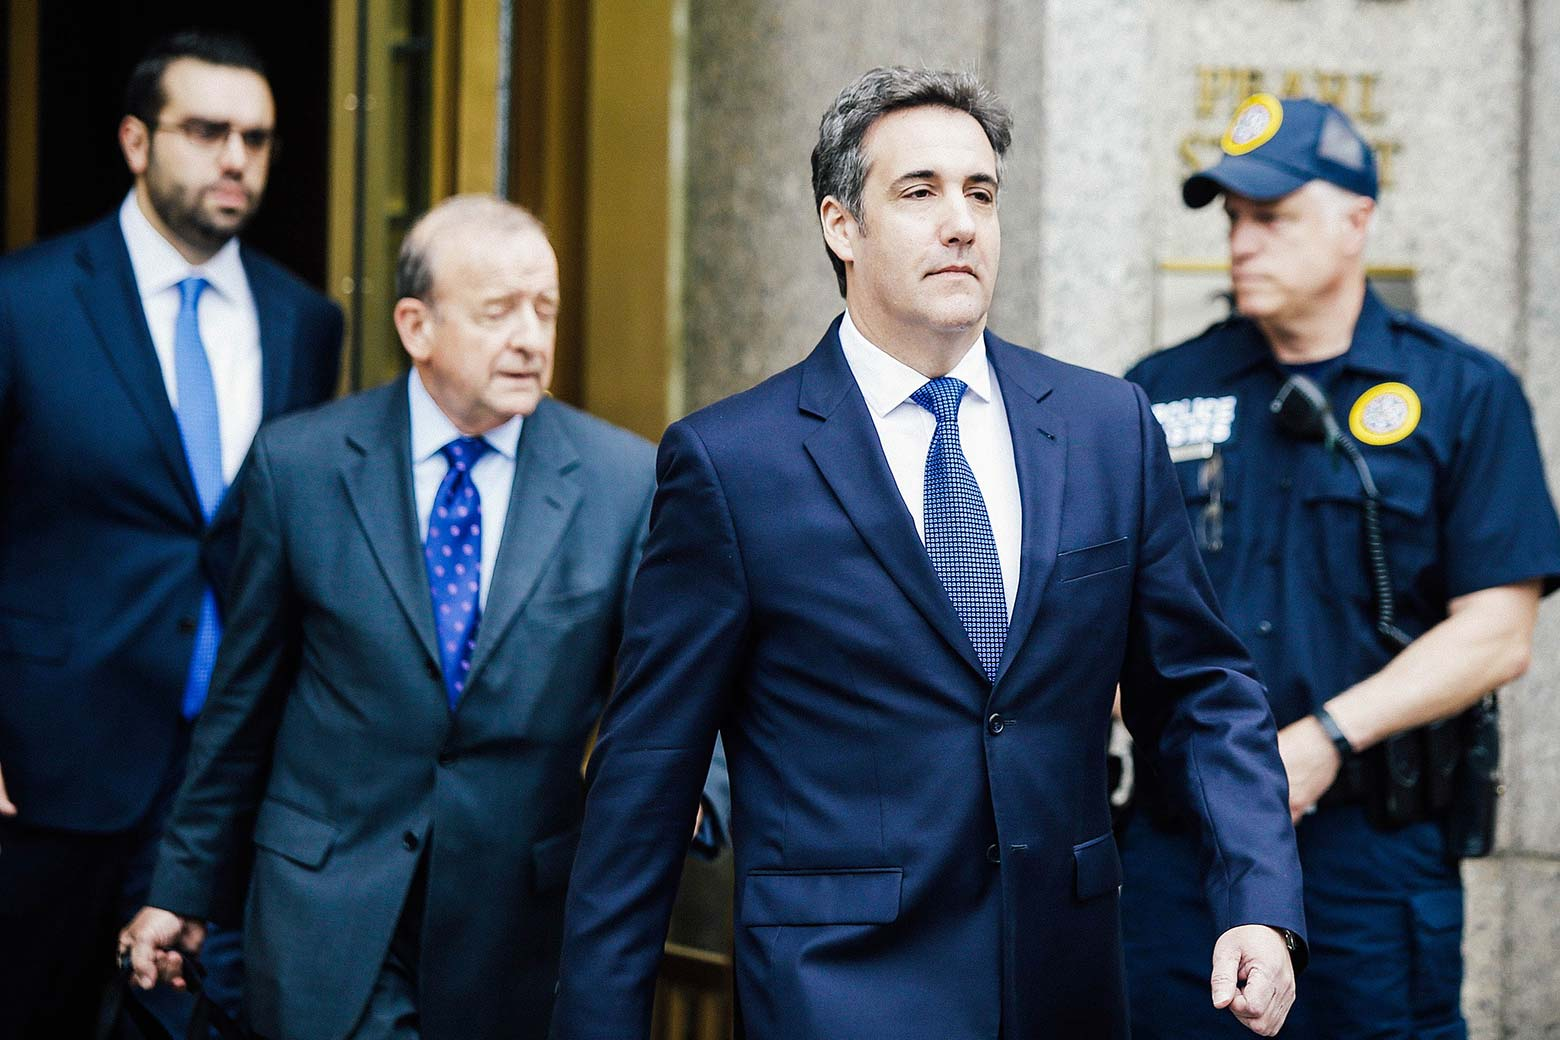 Michael Cohen exits the United States District Court for the Southern District of New York on May 30 in New York City.